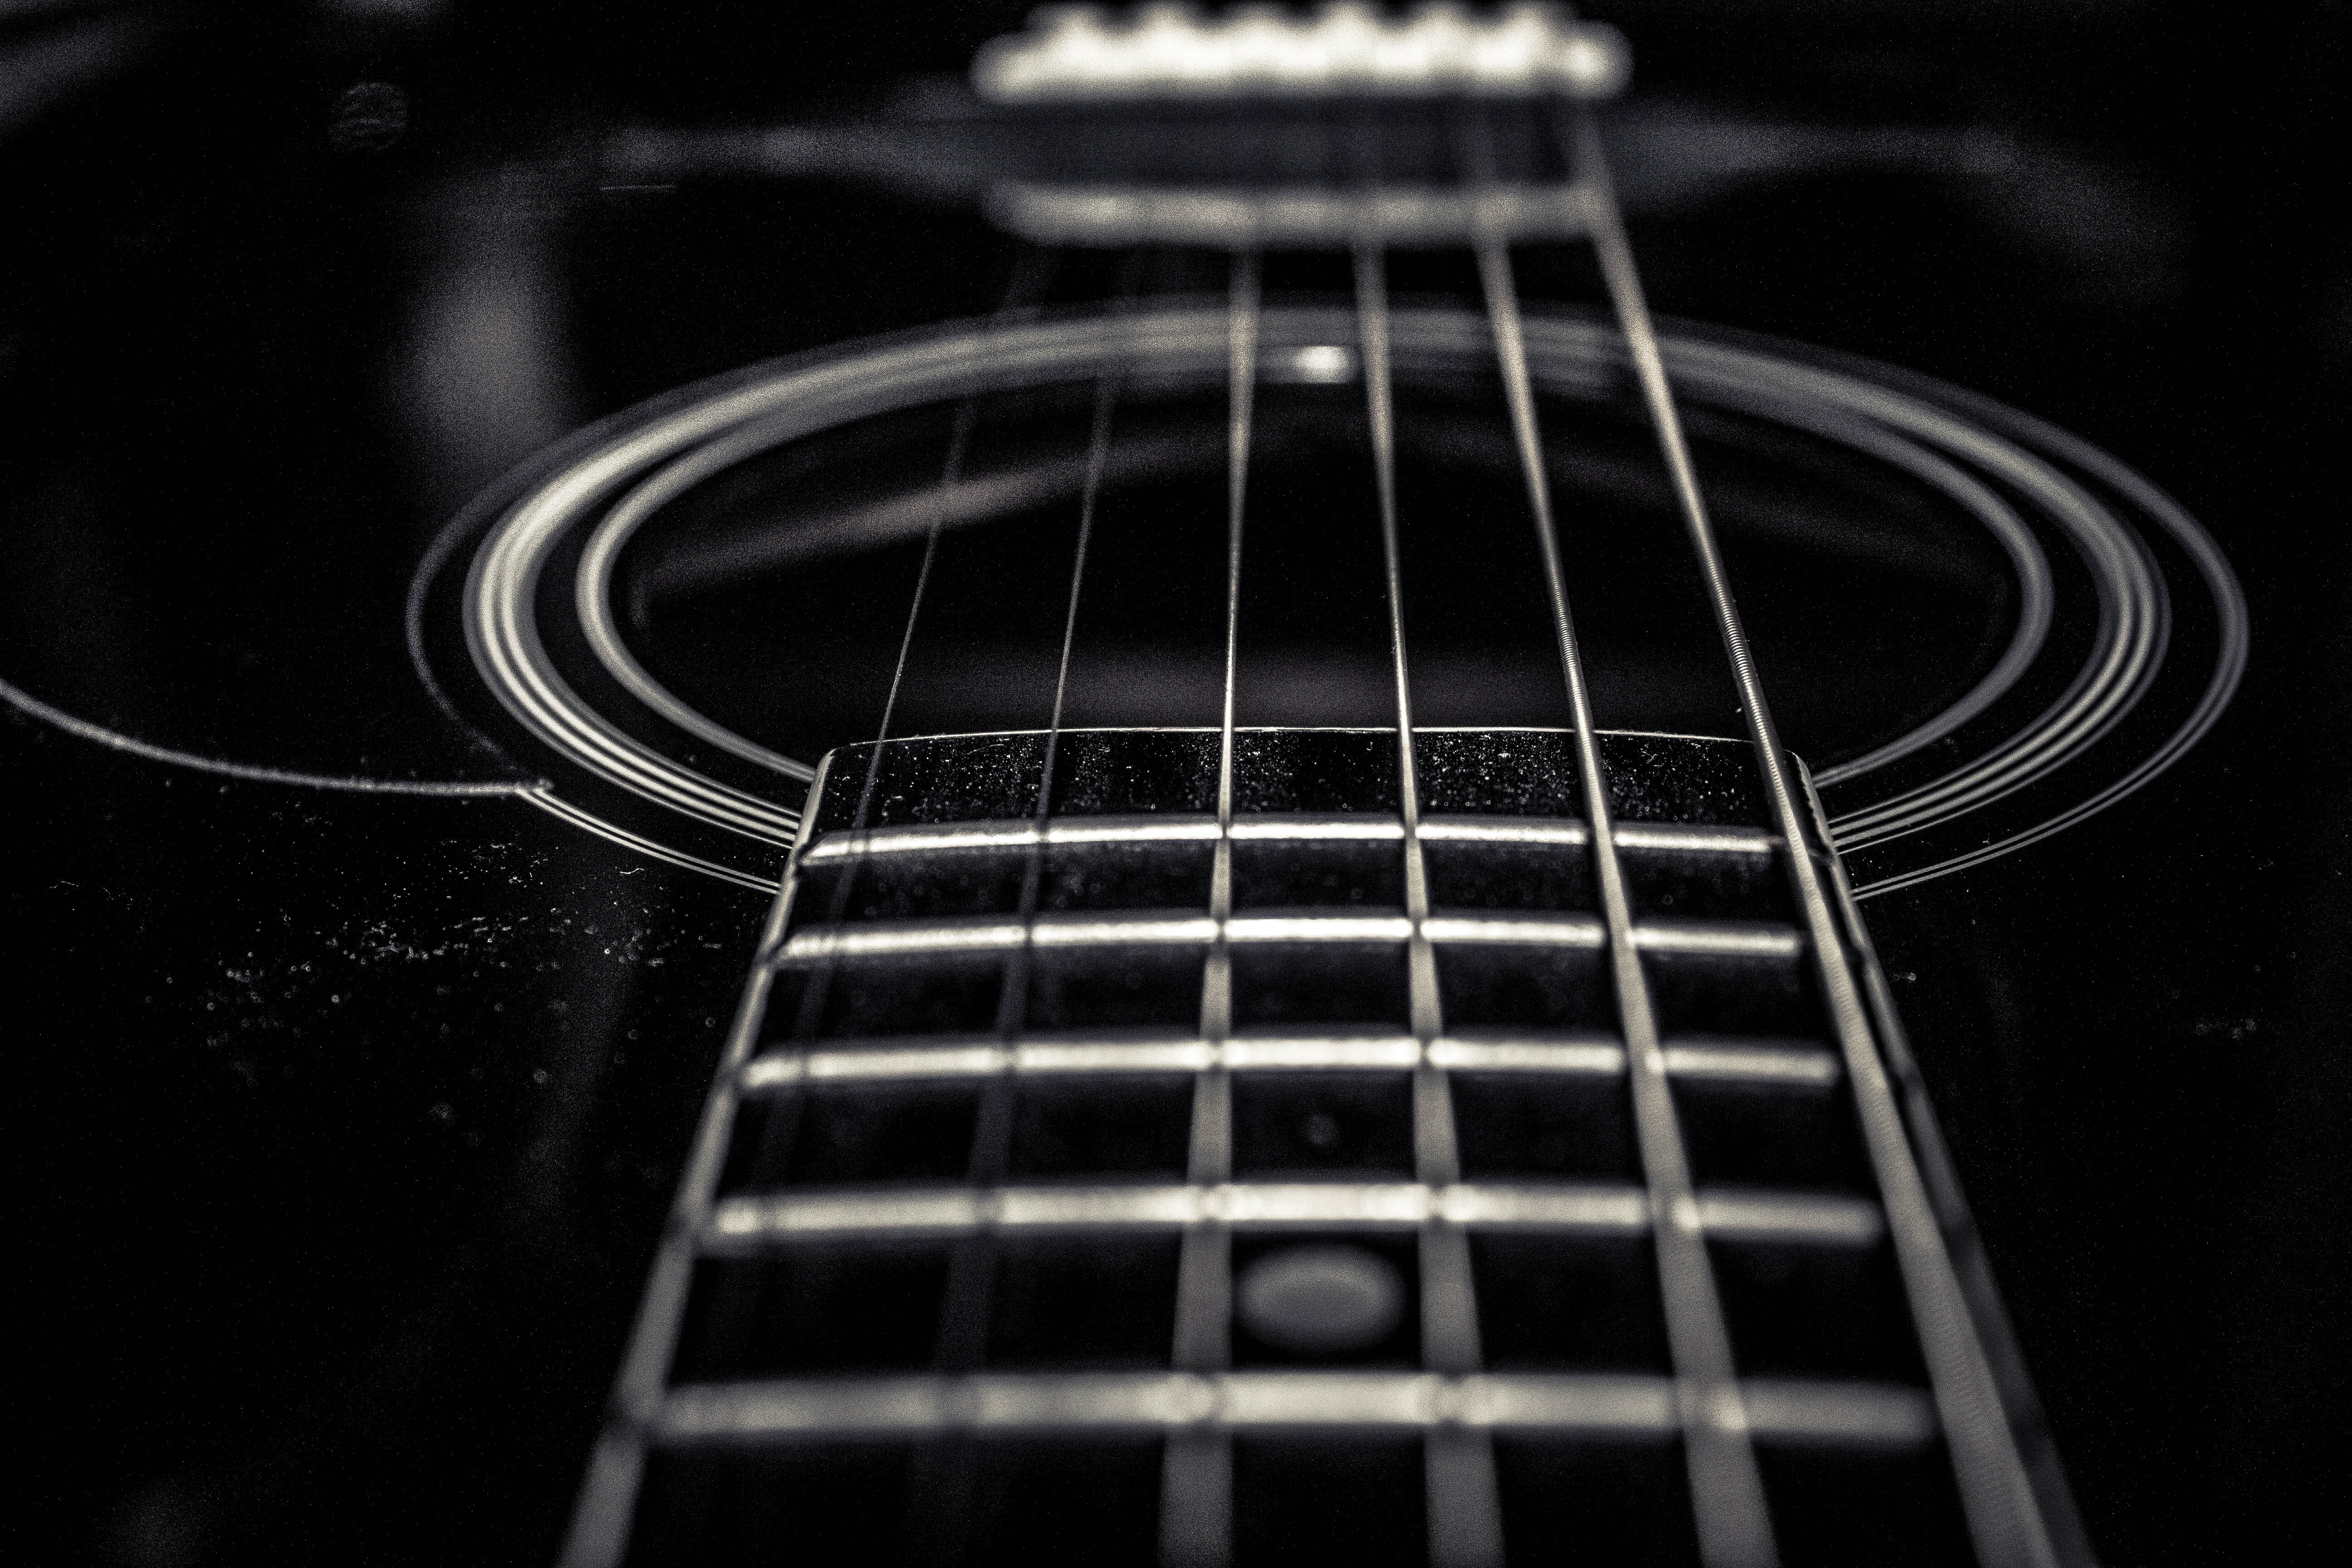 Free Stock Photo Of Acoustic Guitar Black And White Guitar Strings